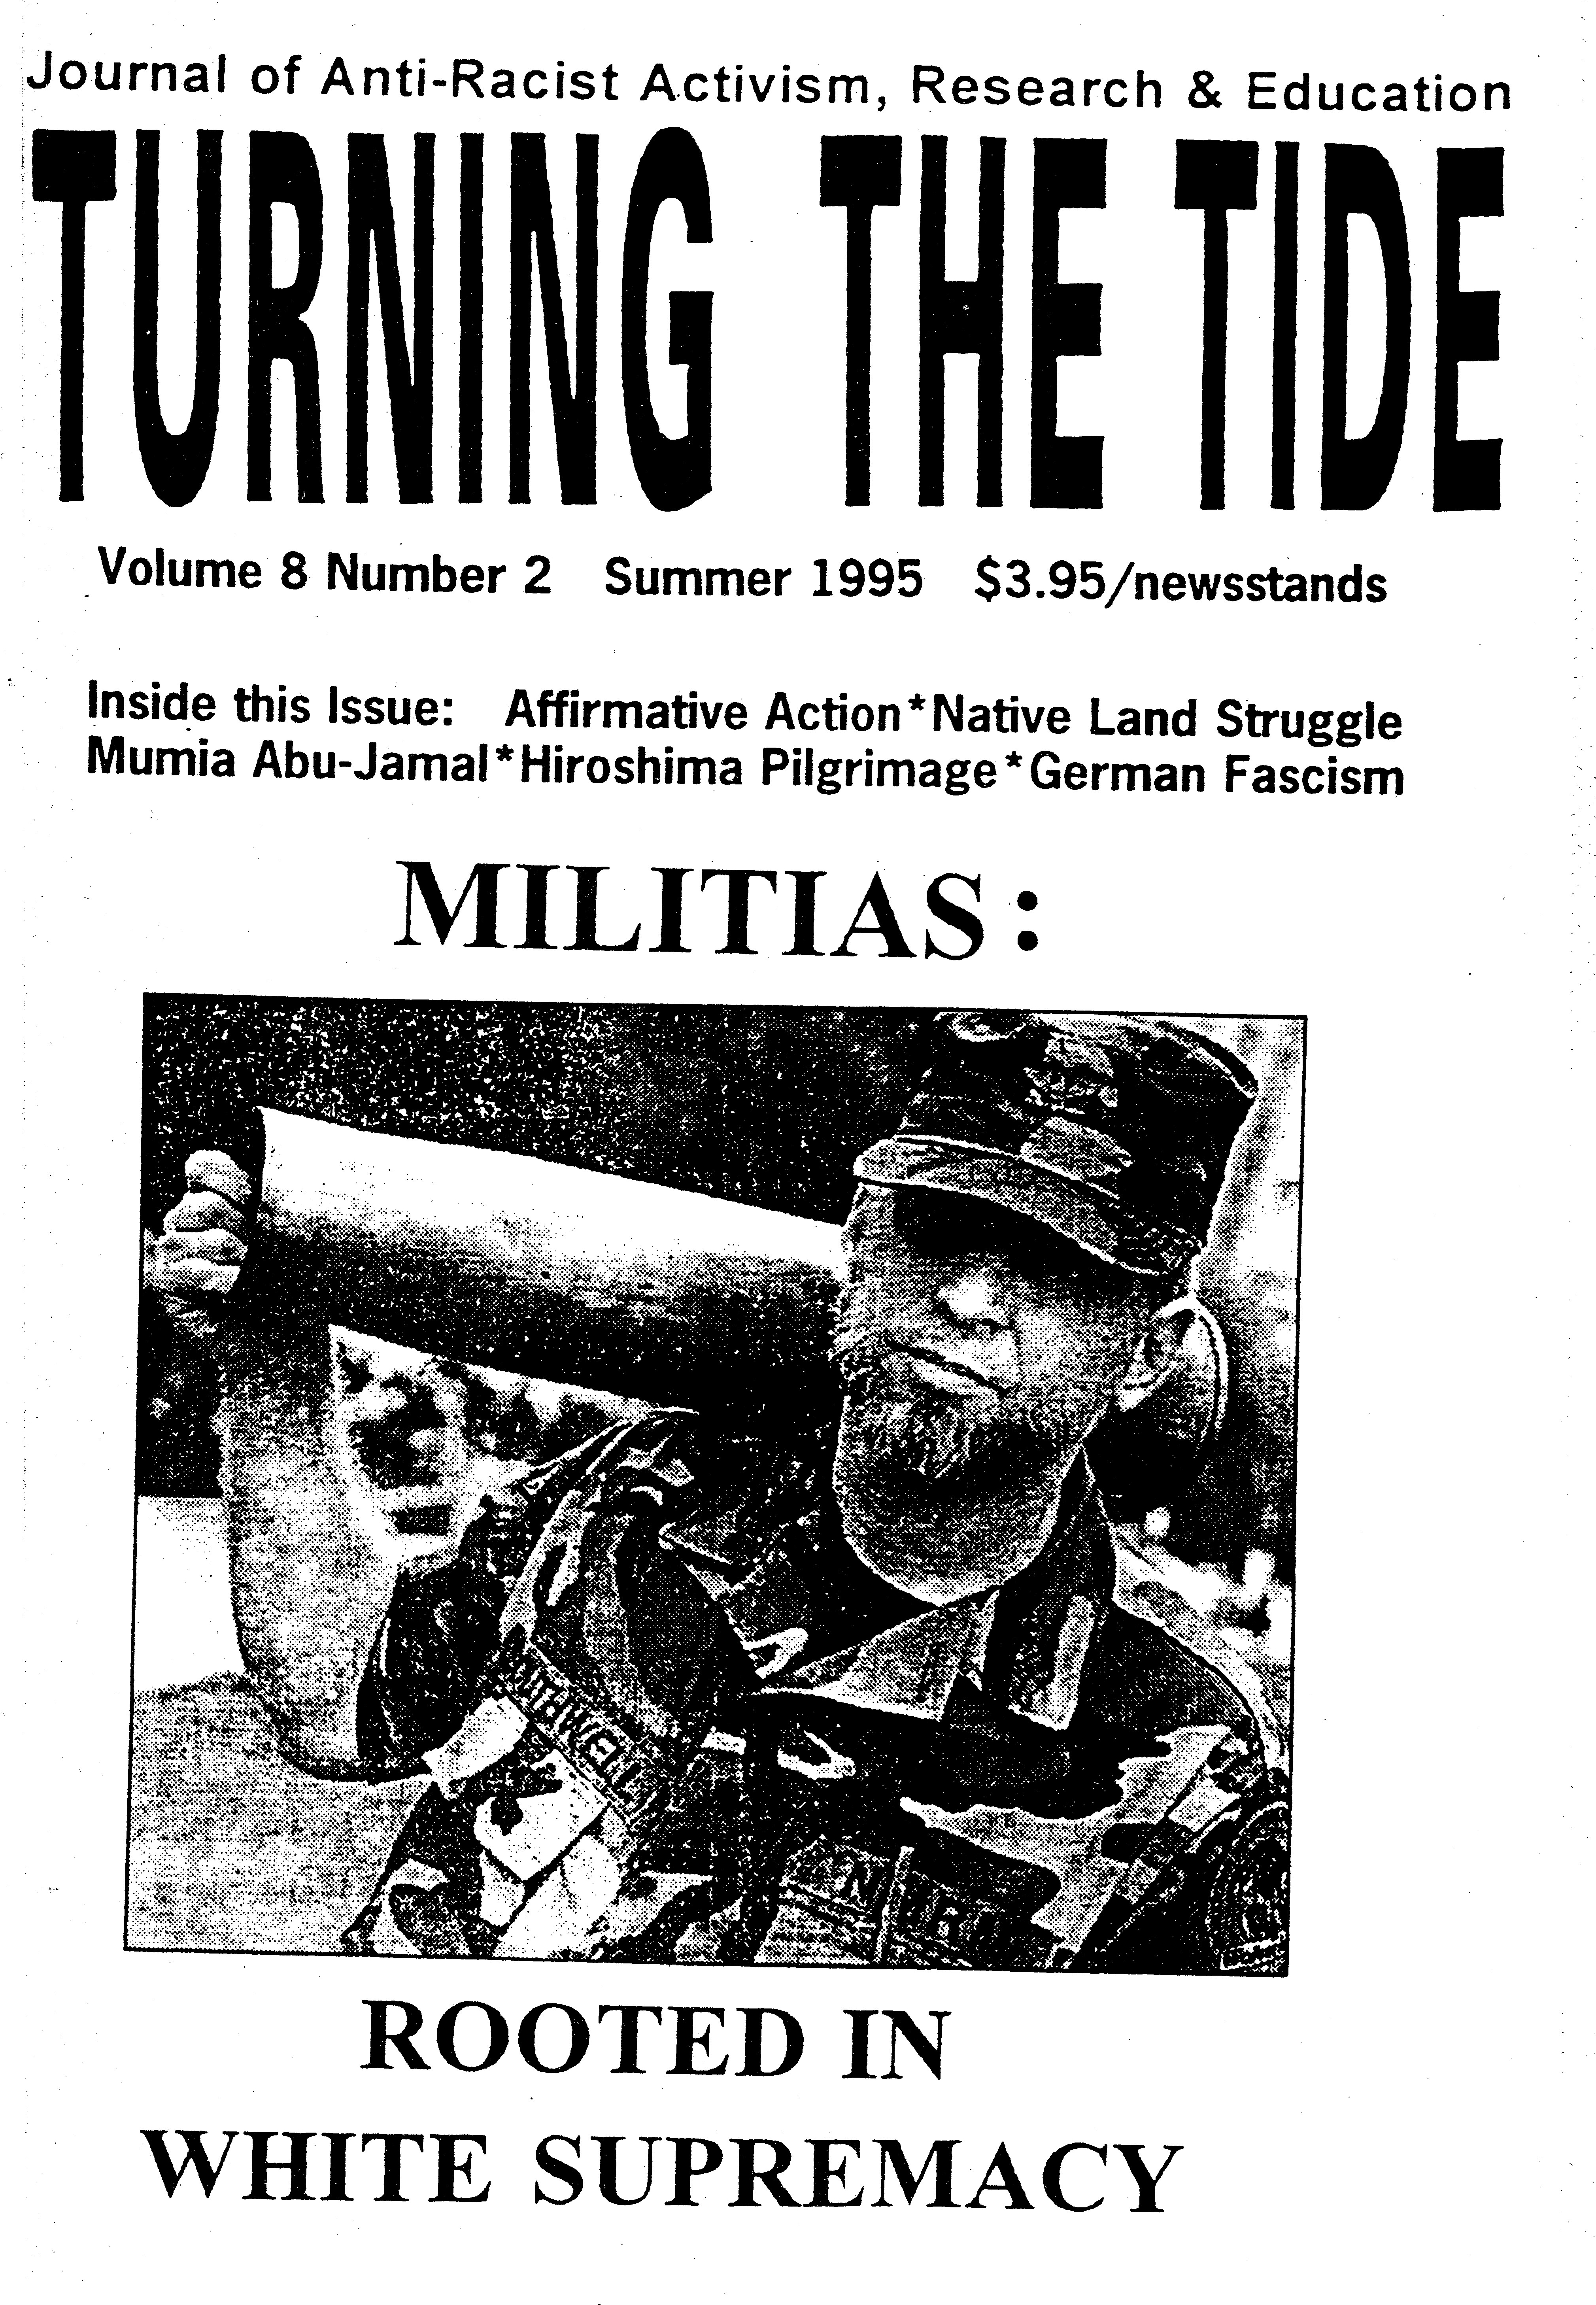 Militias: Rooted in White Supremacy